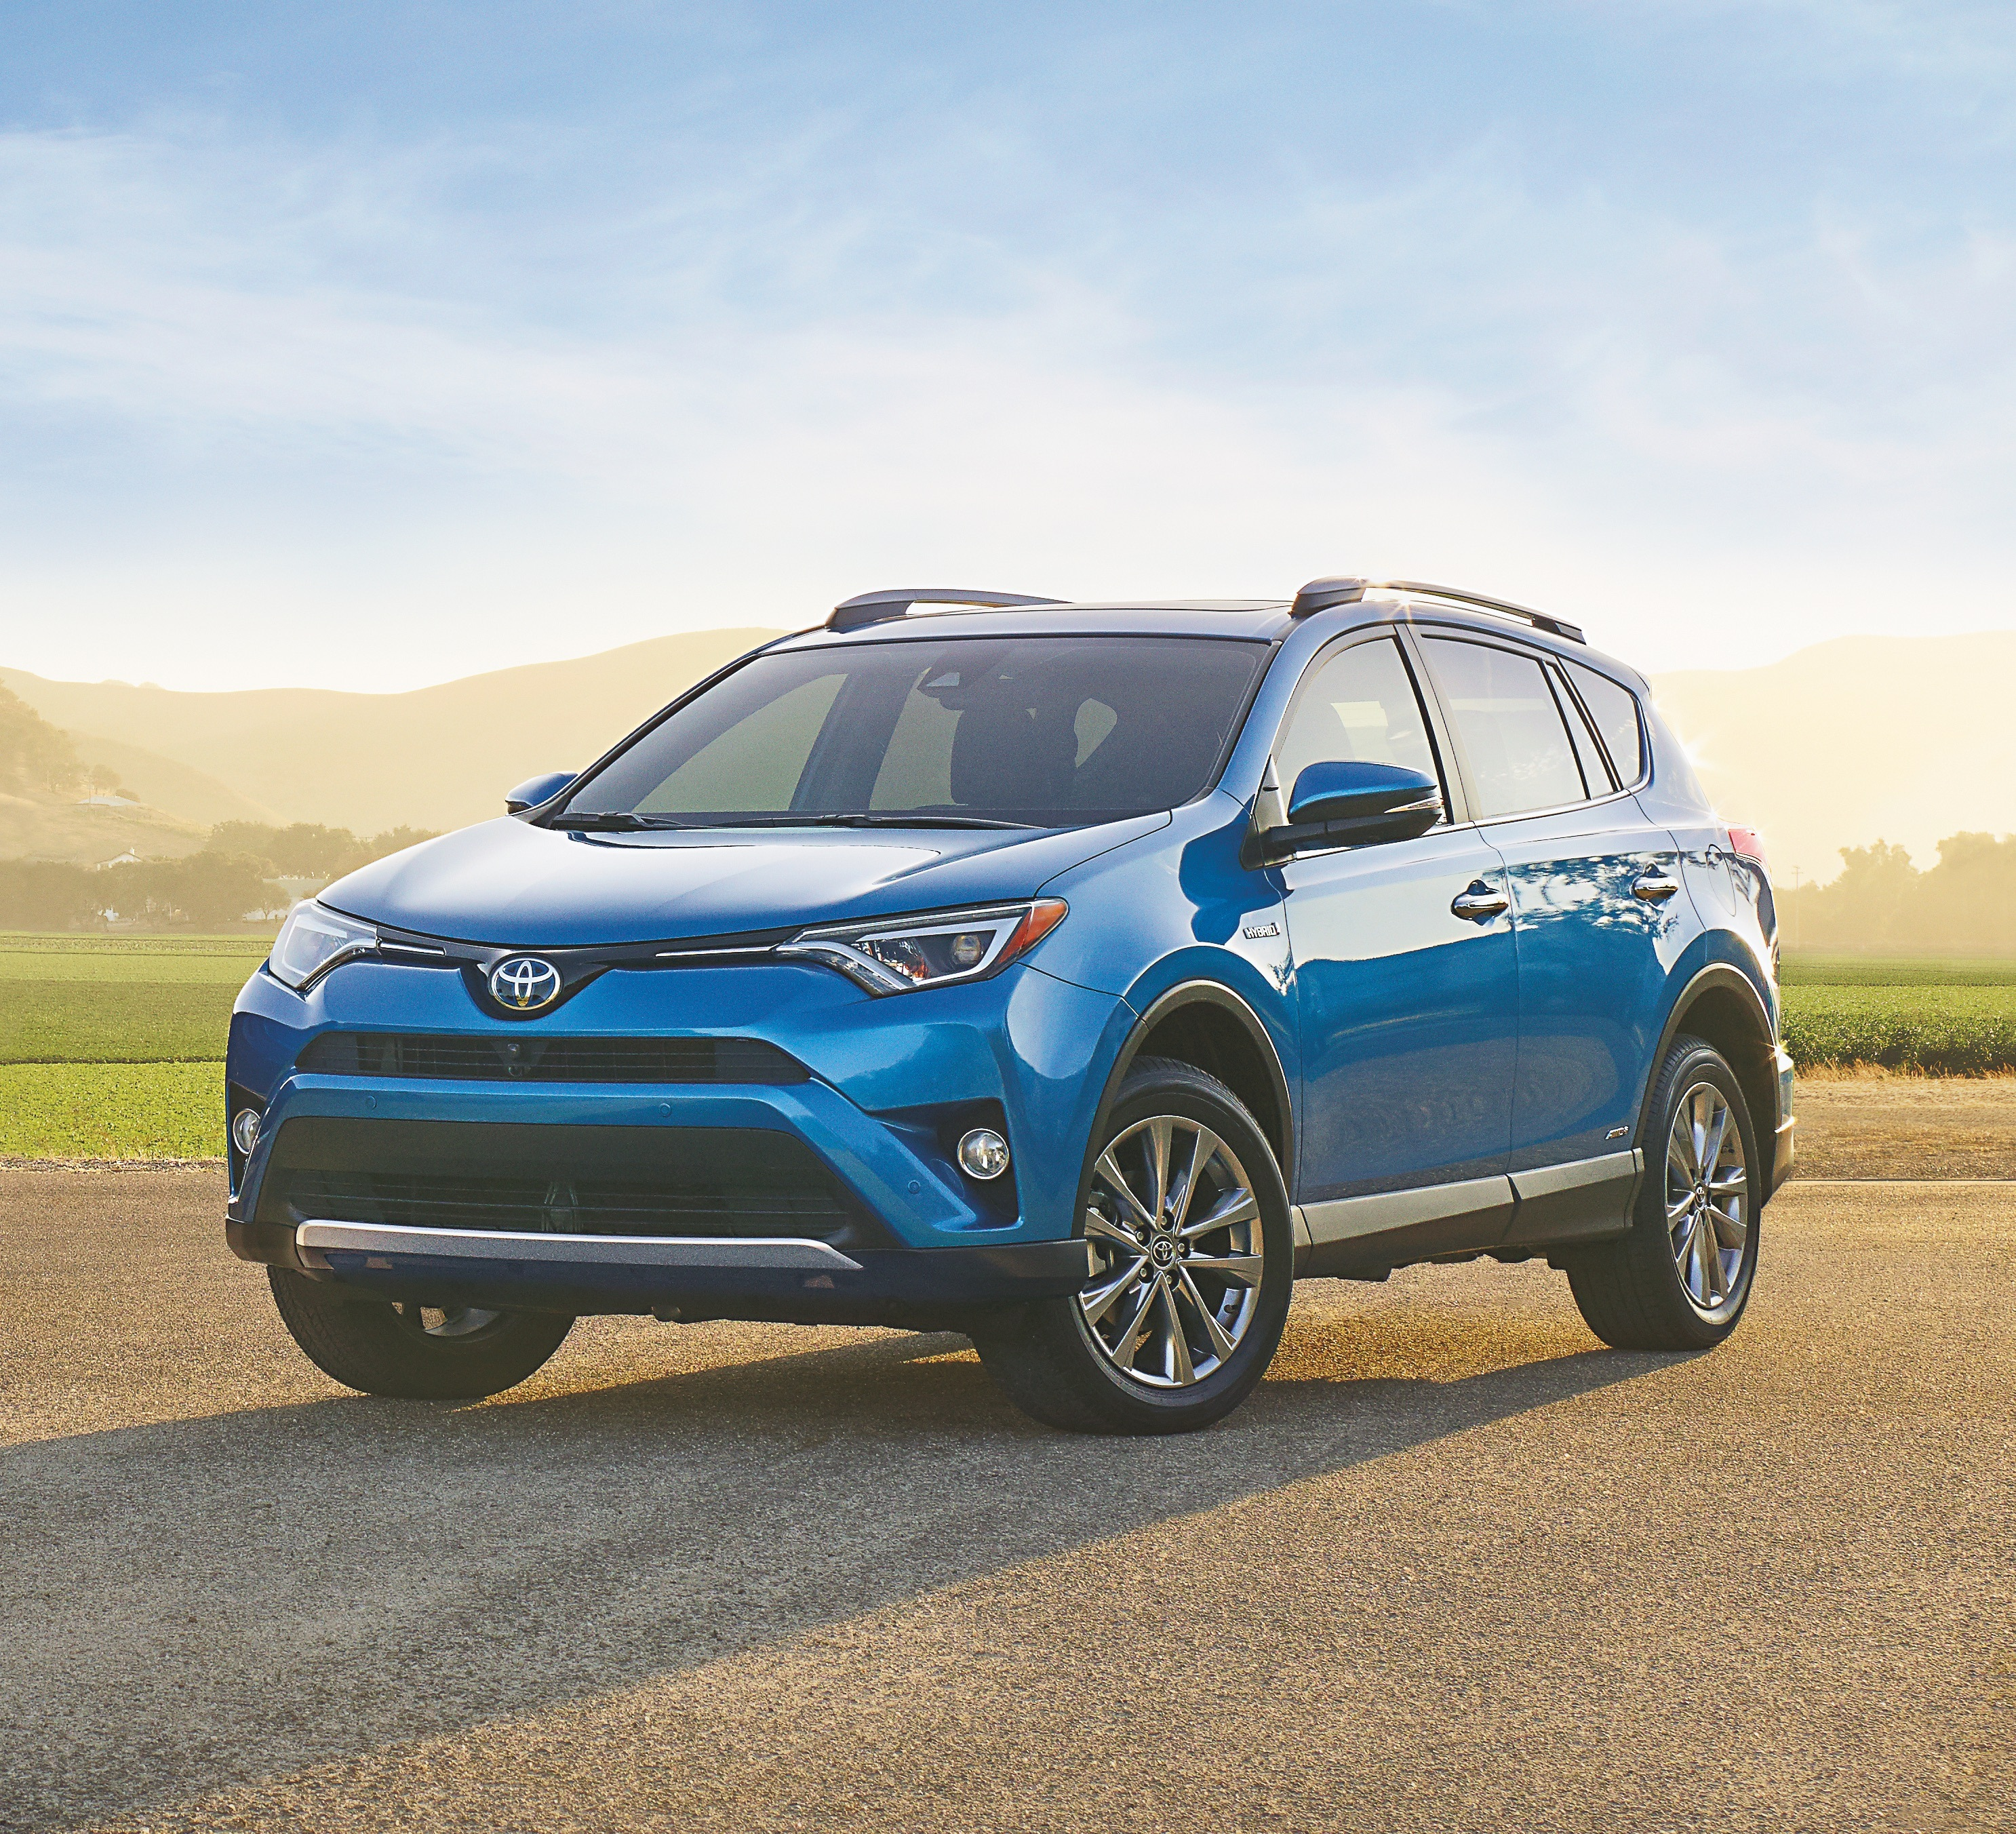 Toyota Certified Used Vehicles - Used 2018 RAV4